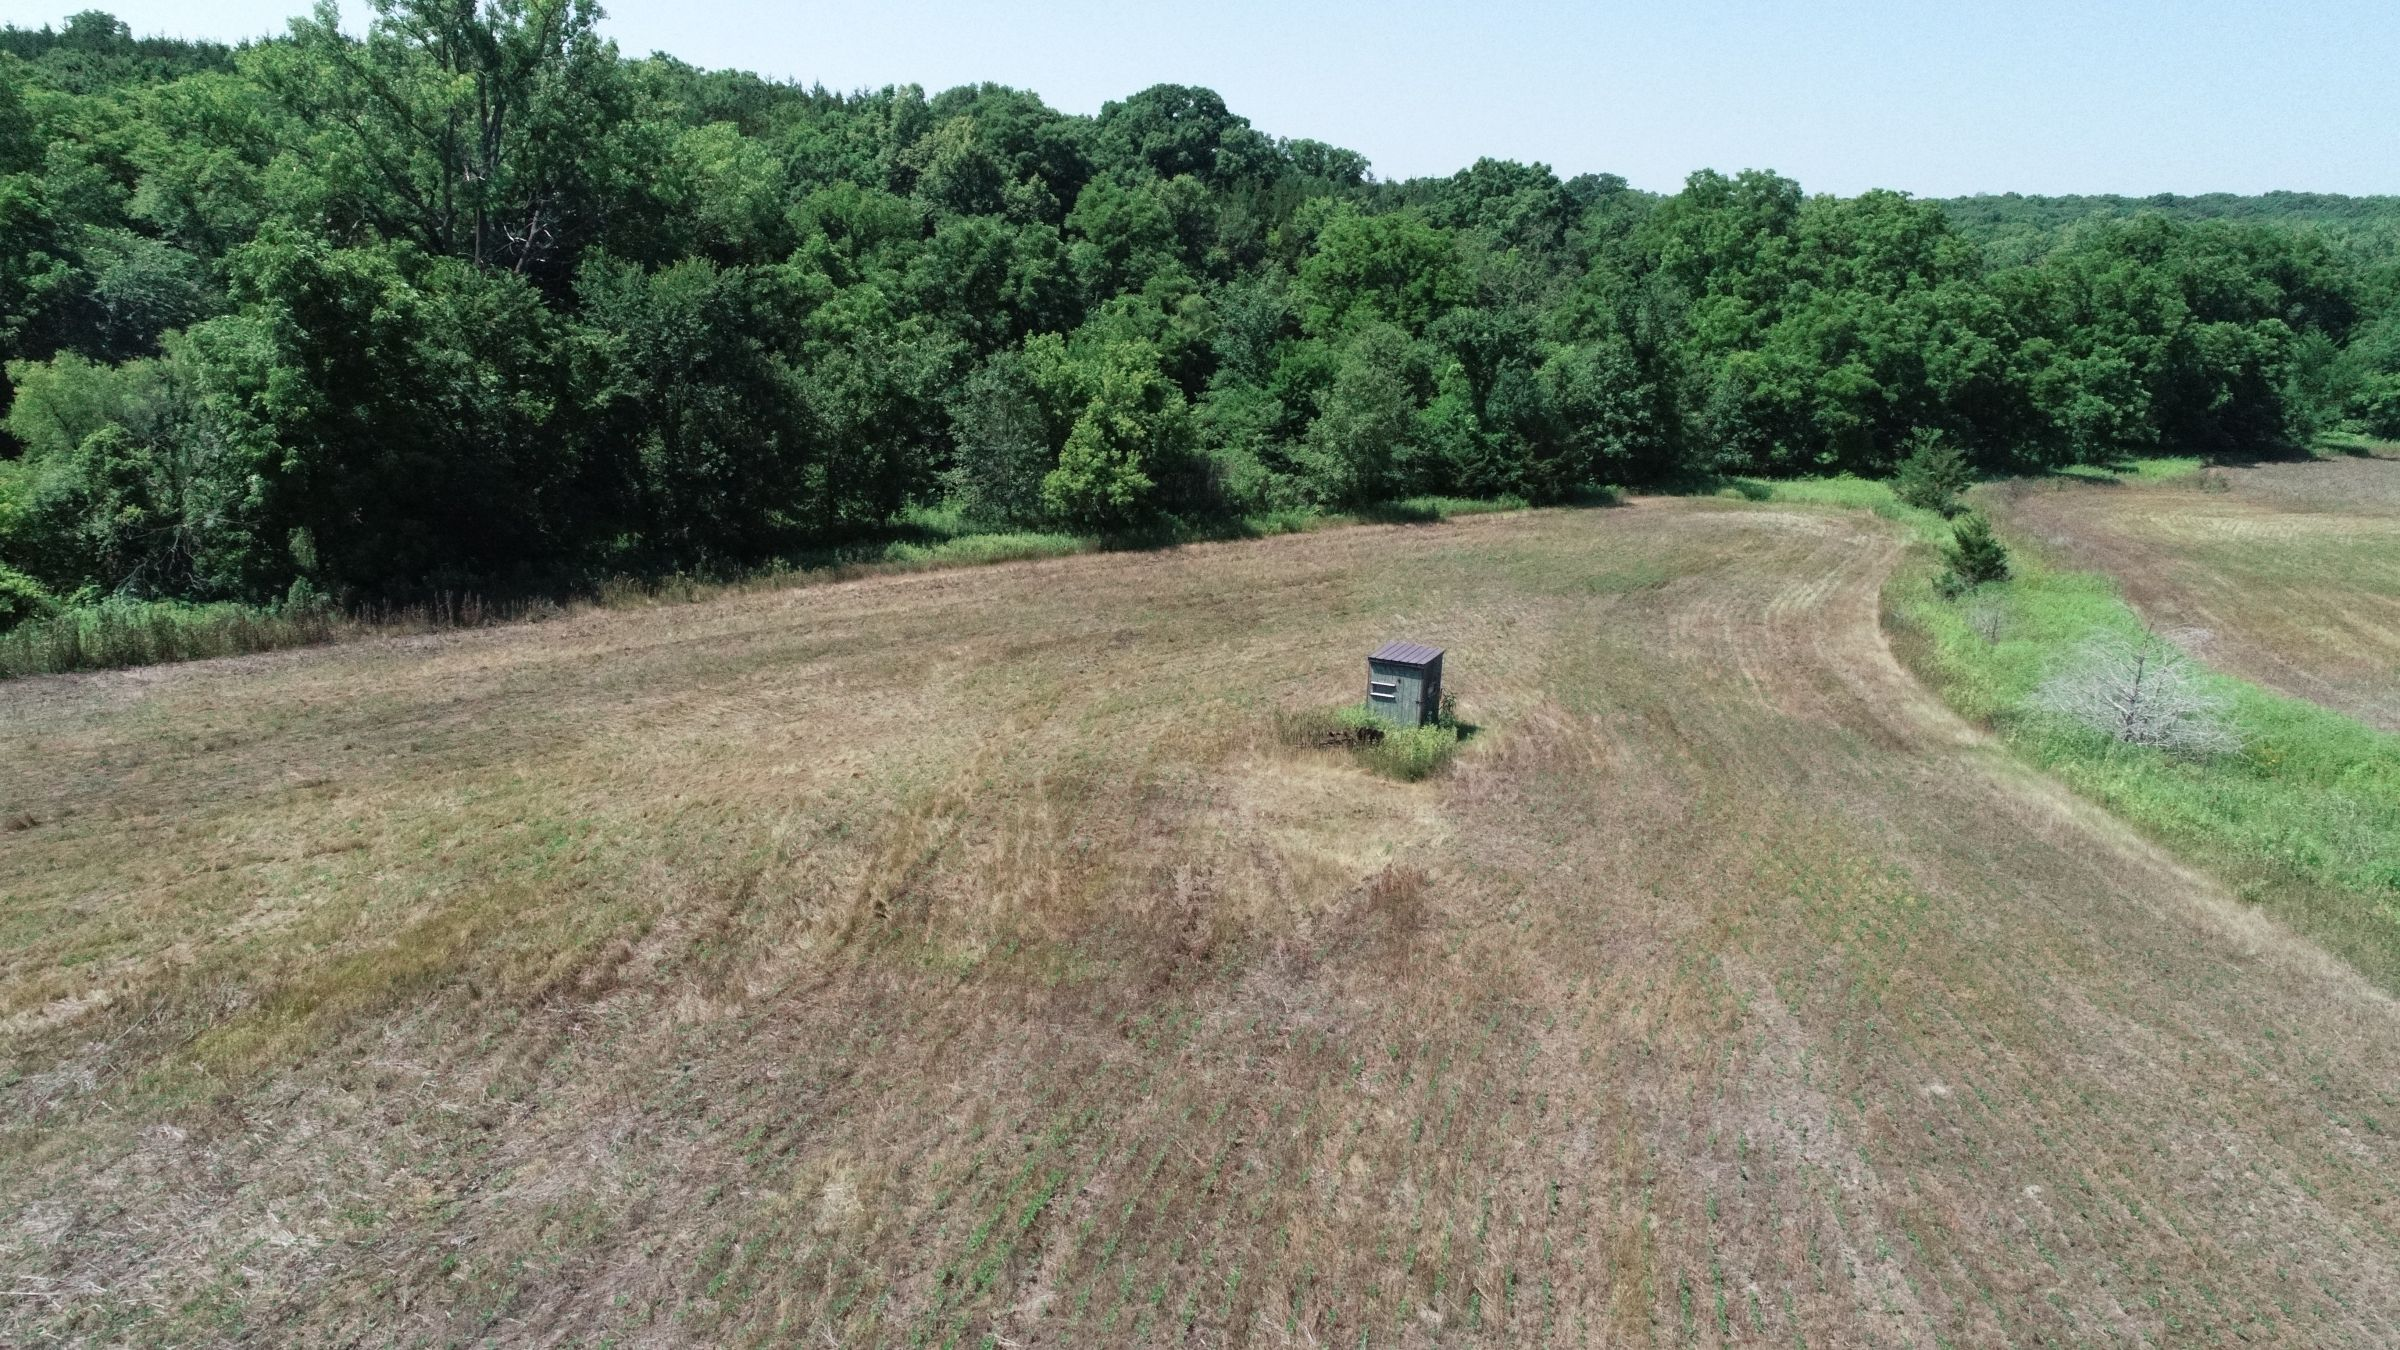 land-decatur-county-iowa-40-acres-listing-number-15069-2-2020-07-13-190427.JPG